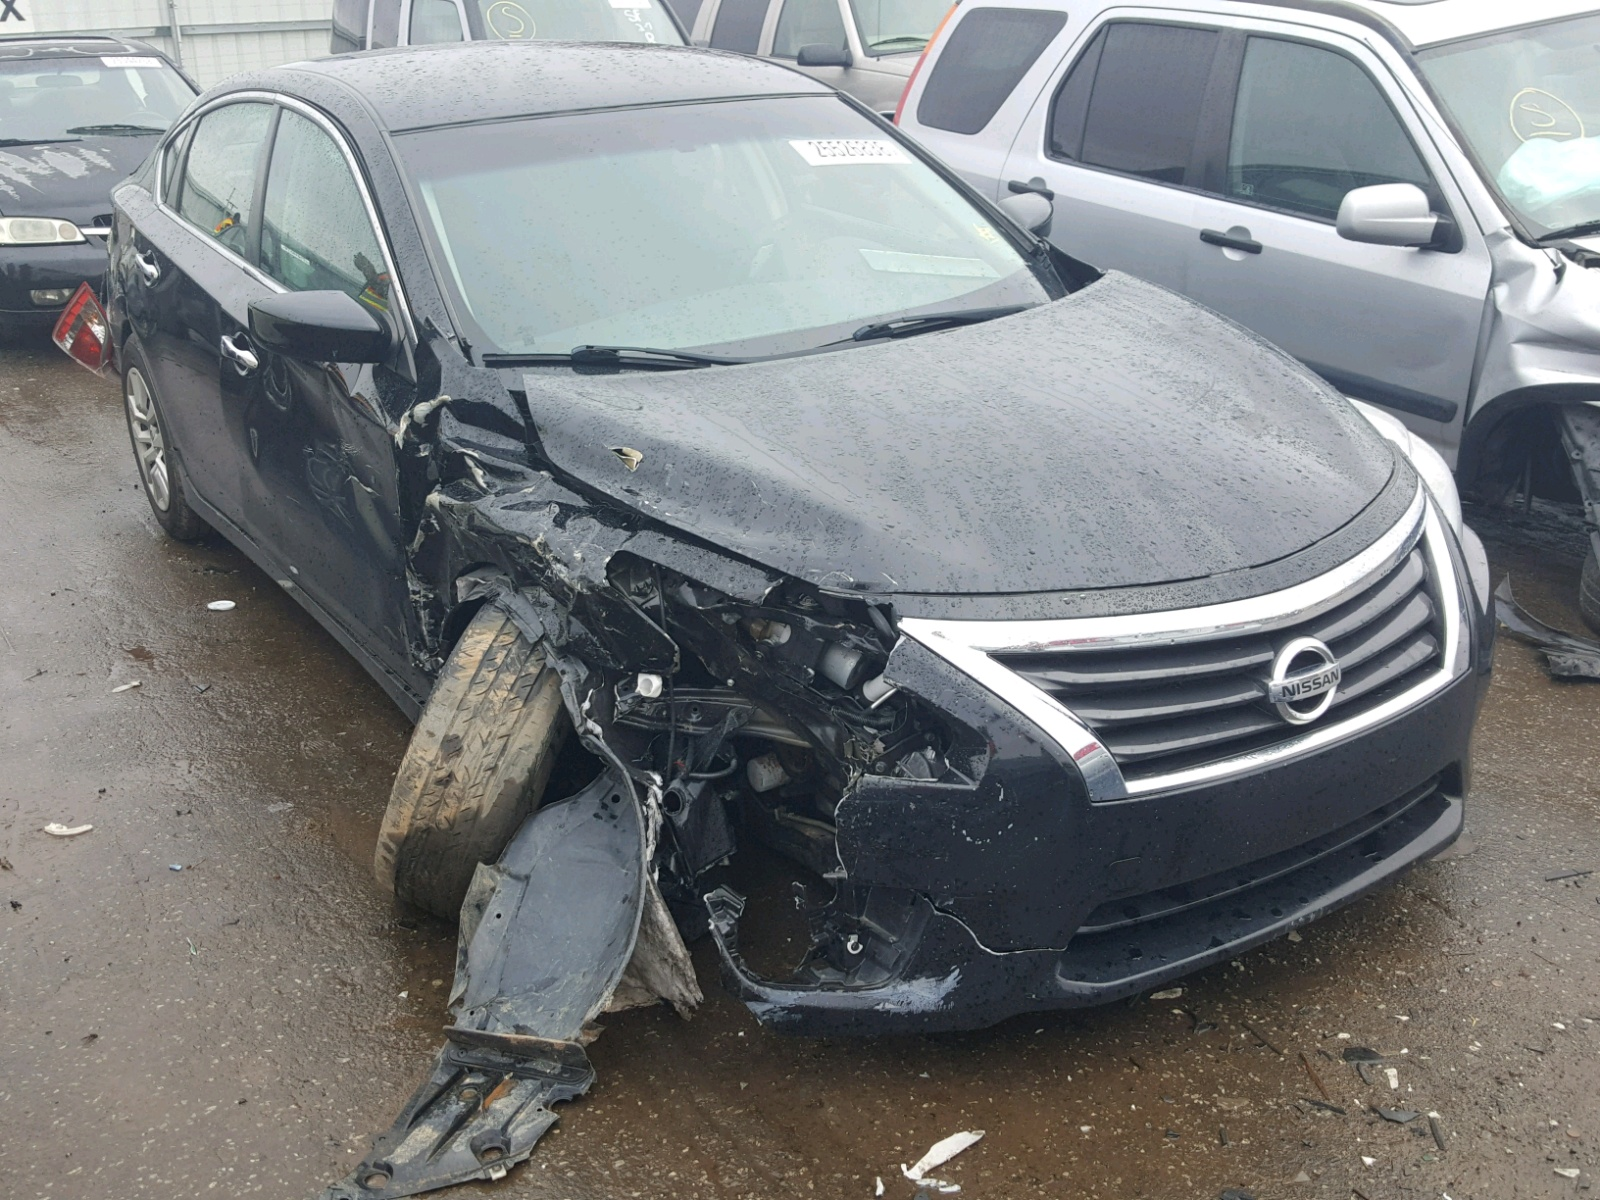 for auto lot left altima en in sale auctions carfinder red copart salvage certificate nissan view tn on nashville online